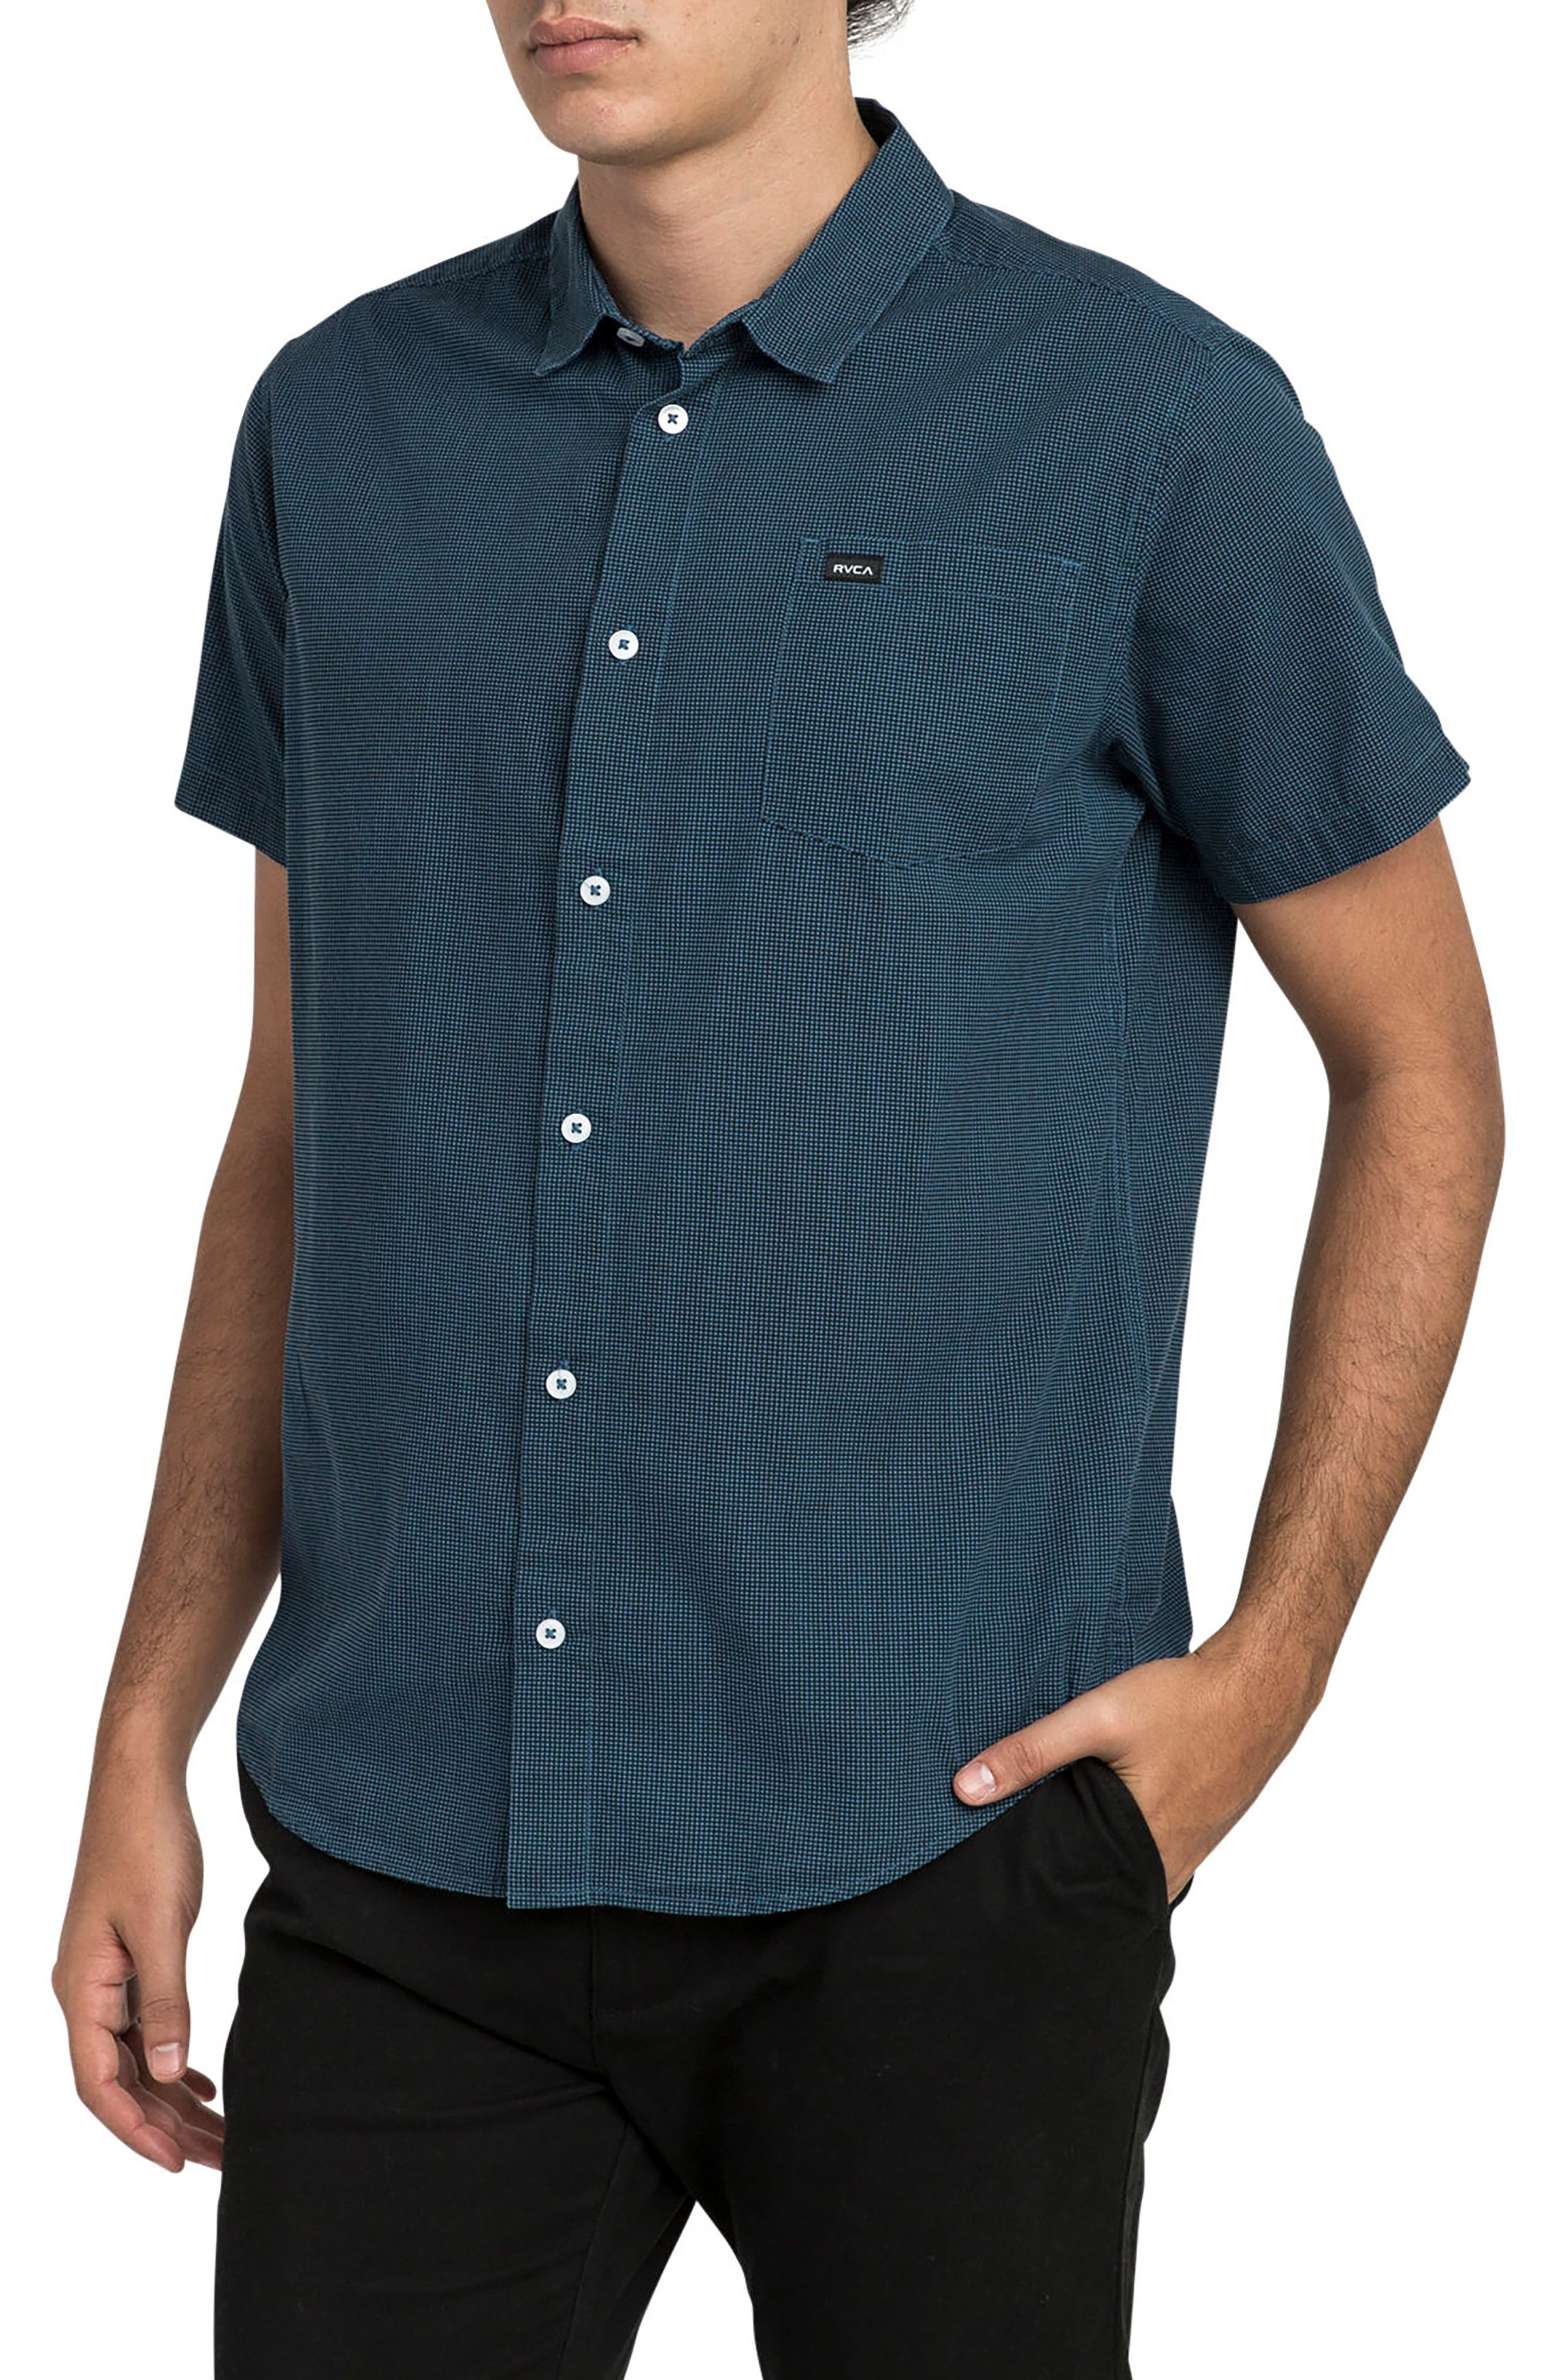 No Name Woven Shirt,                             Alternate thumbnail 3, color,                             400